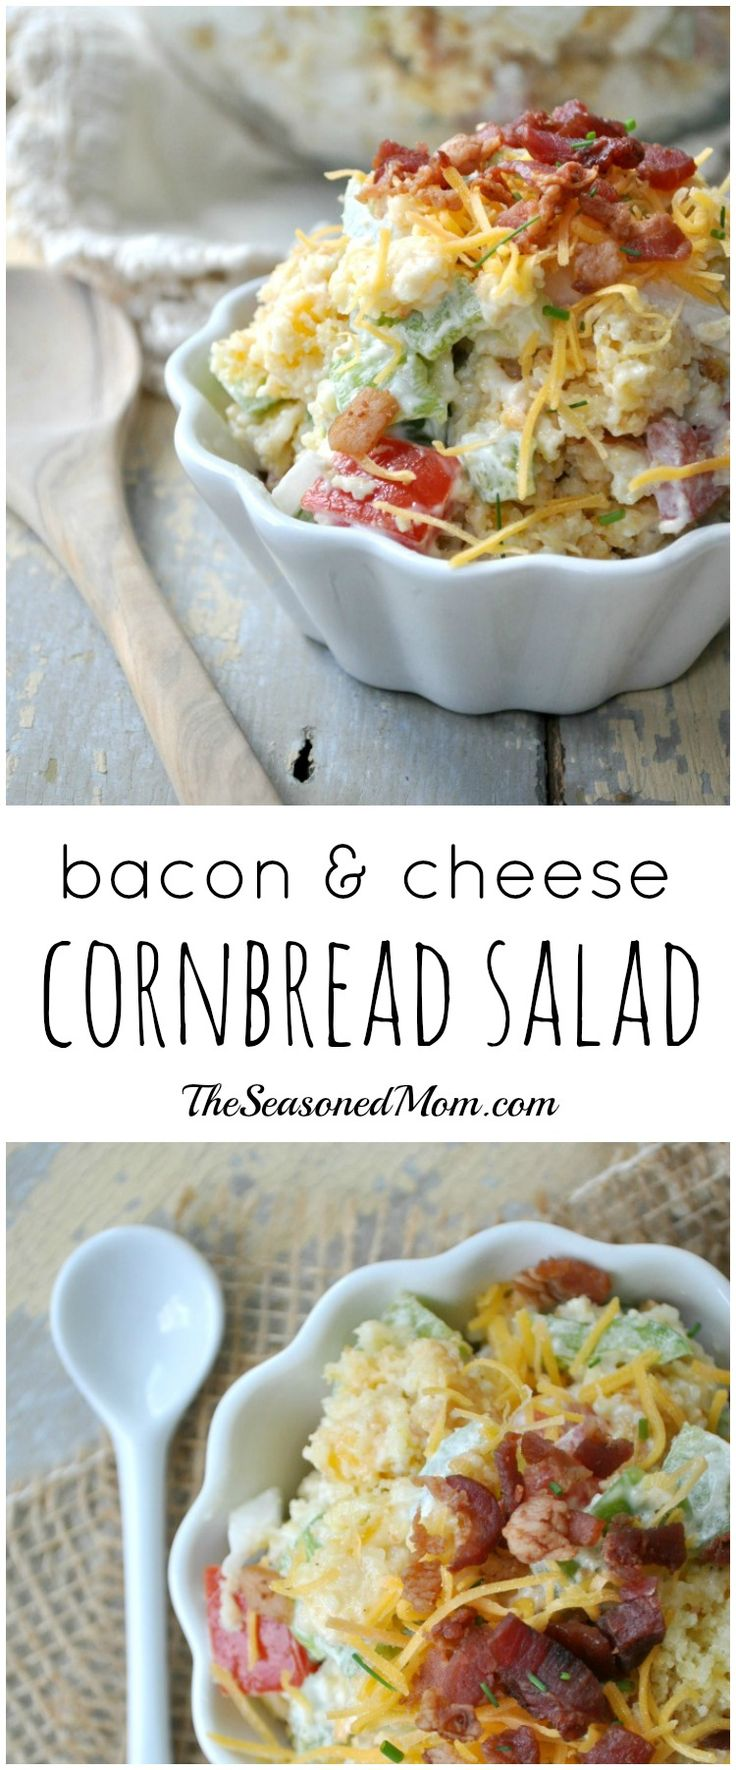 Bacon and Cheese Cornbread Salad - The Seasoned Mom